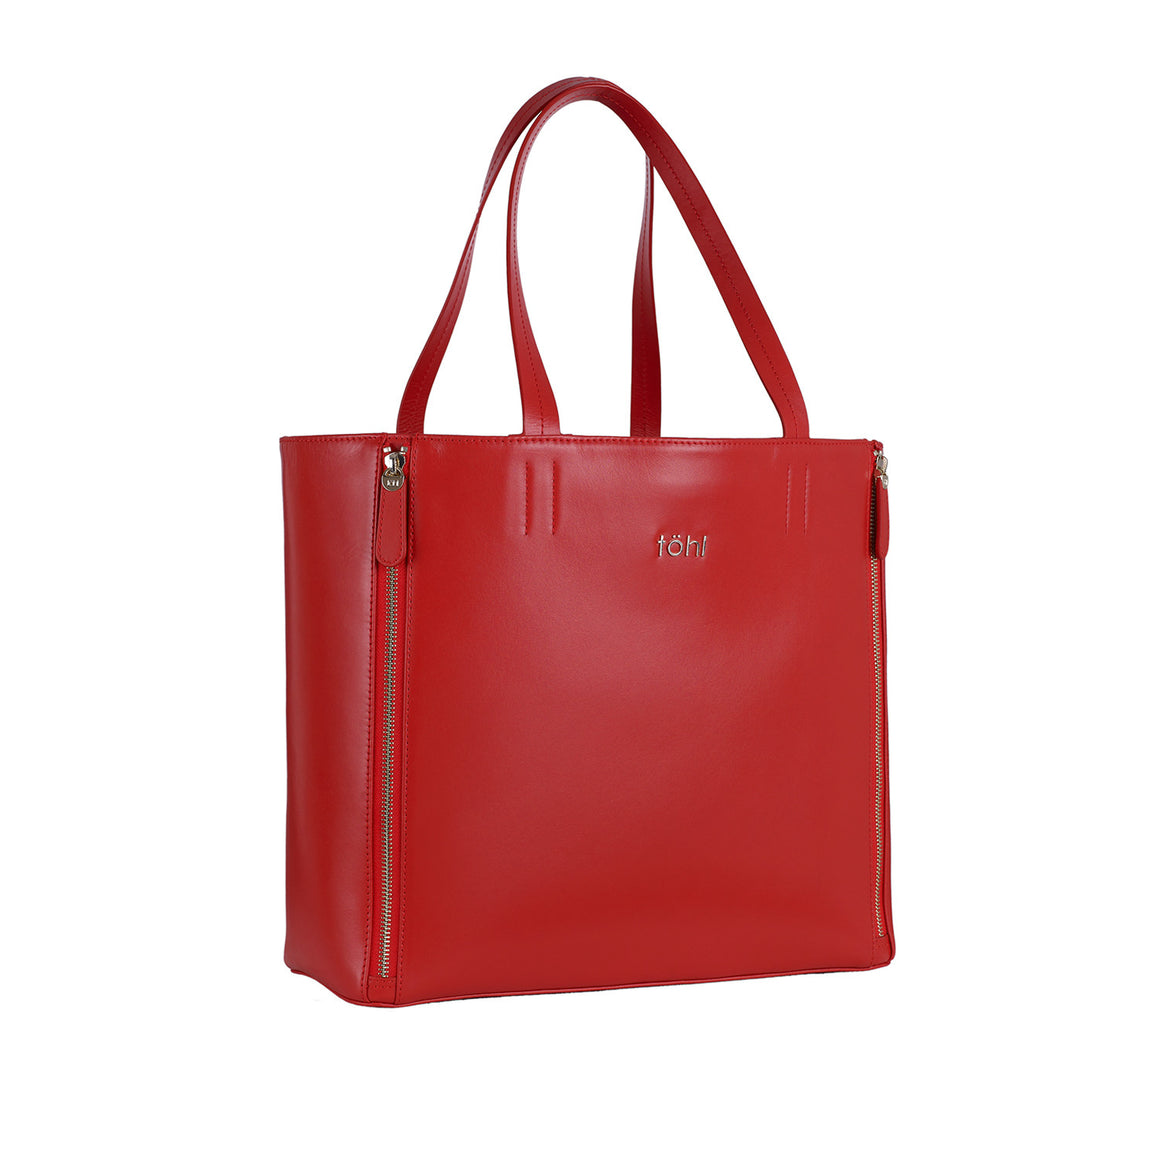 TT 0006 - TOHL RIVINGTON WOMEN'S TOTE BAG - SPICE RED